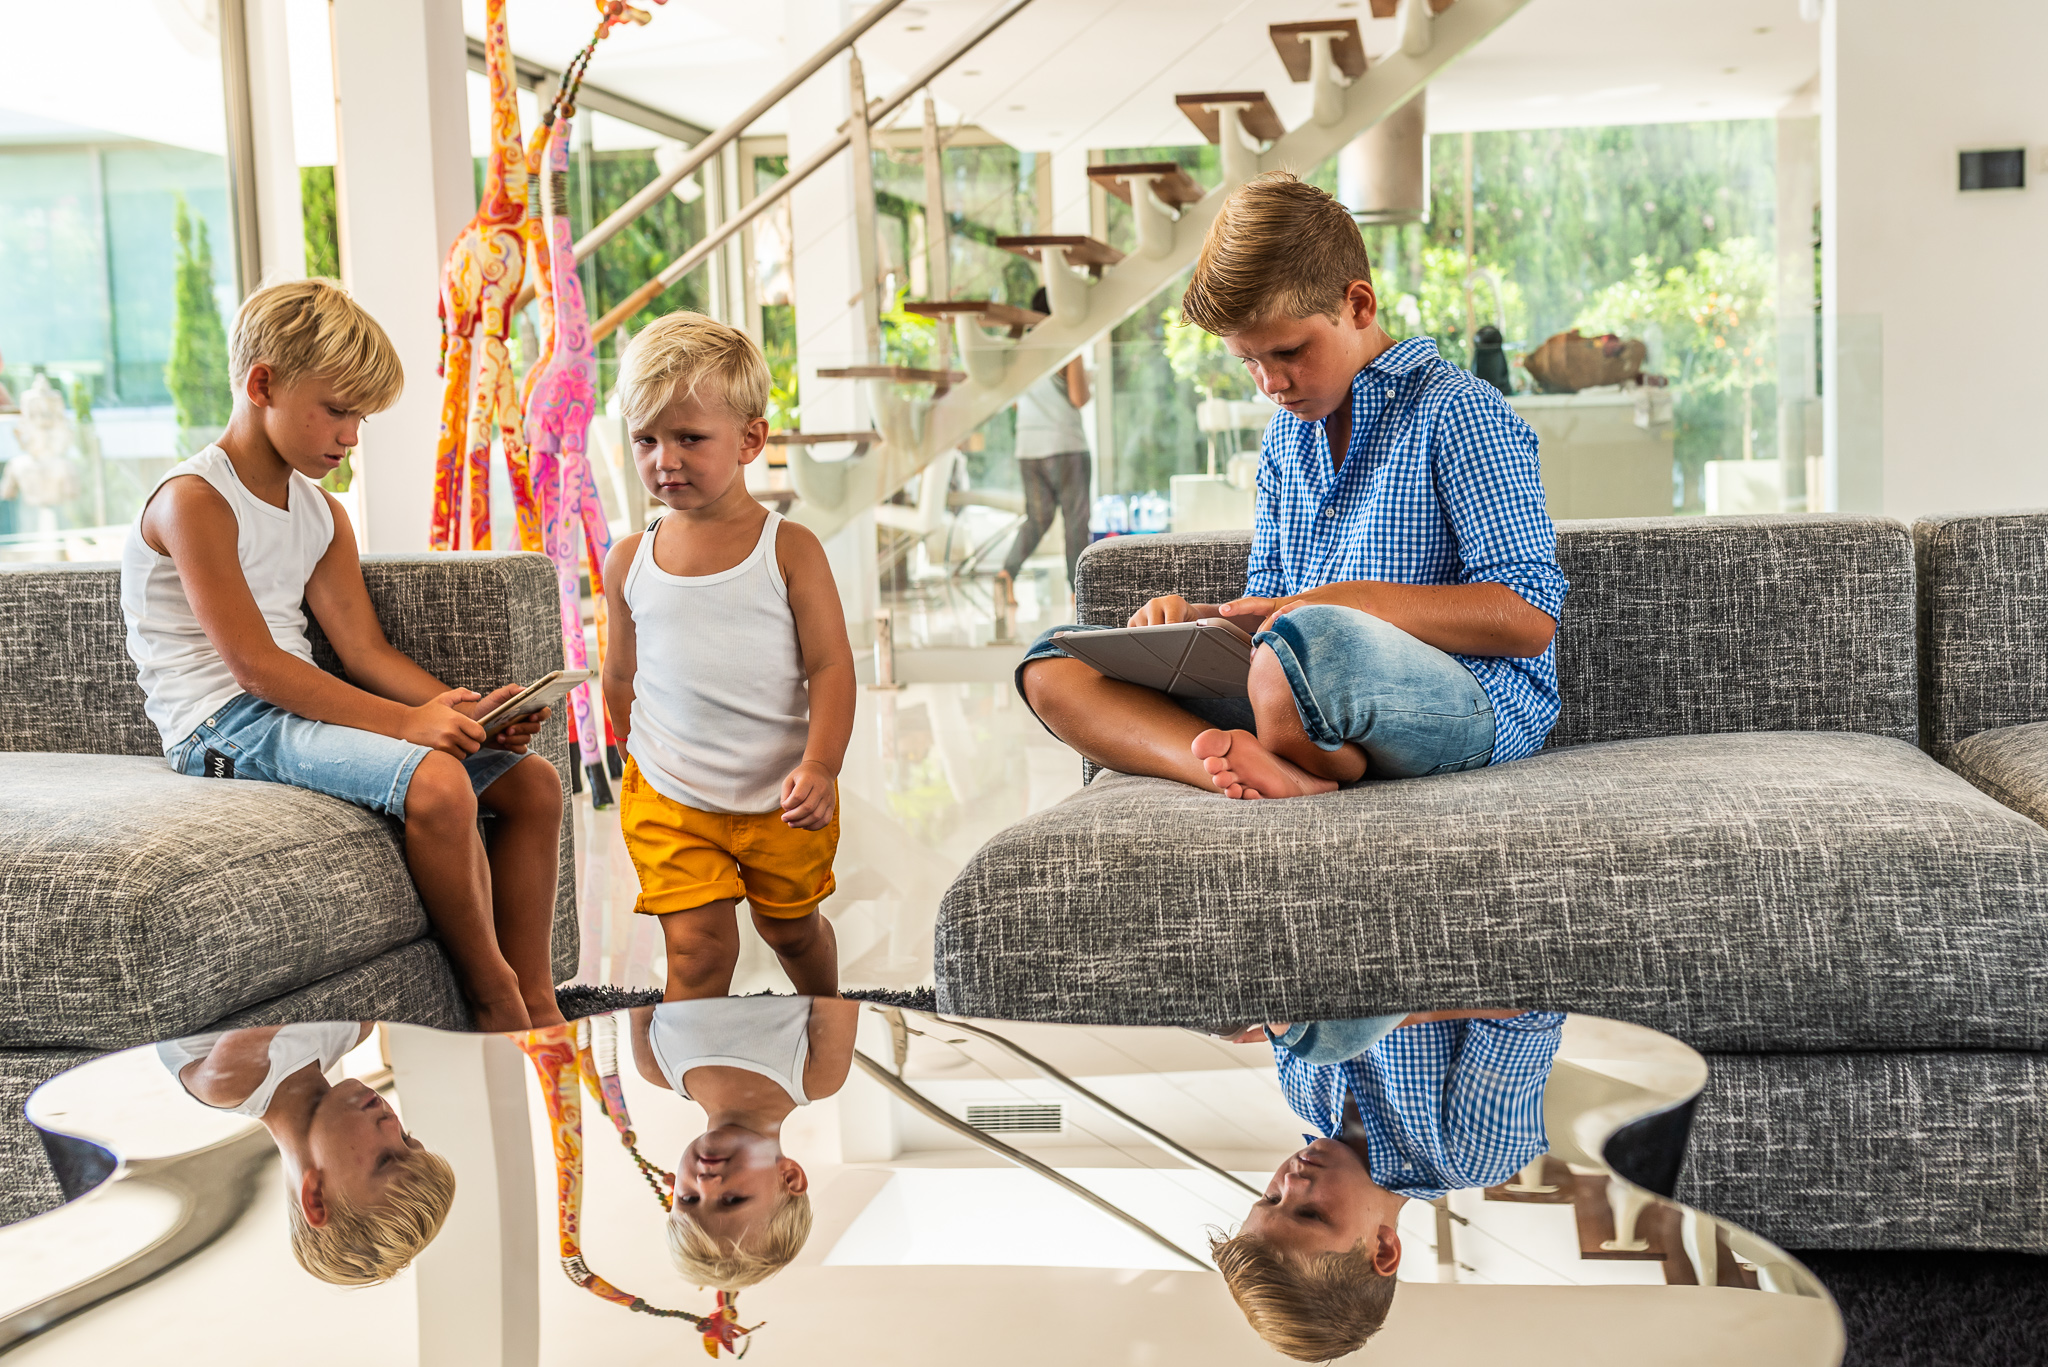 Family Lifestyle Photography in Ibiza